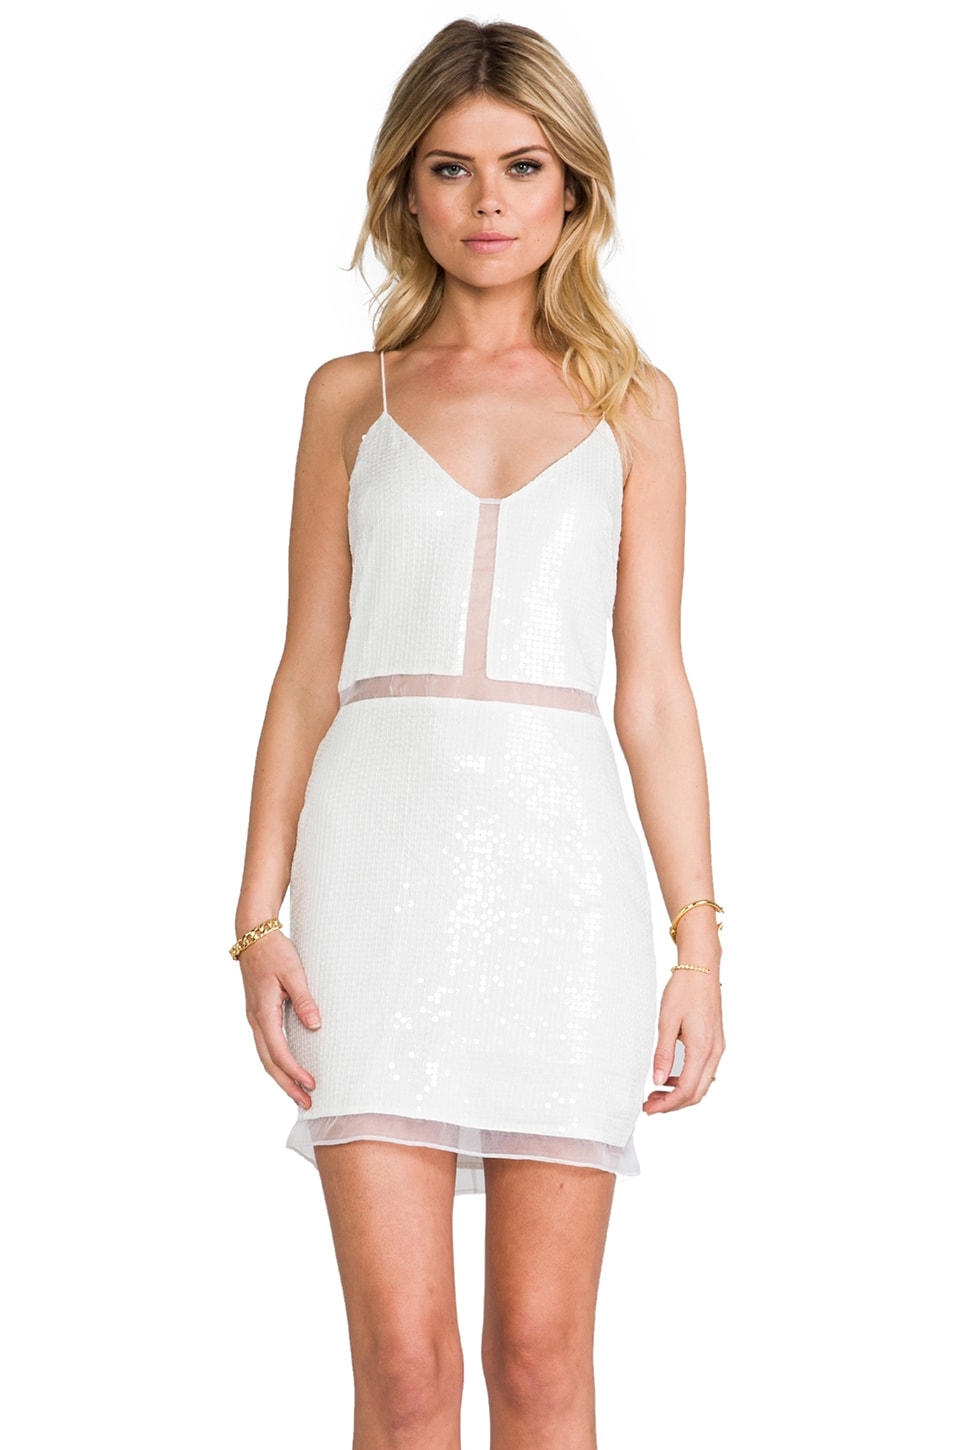 Dolce Vita Alva Dress in White